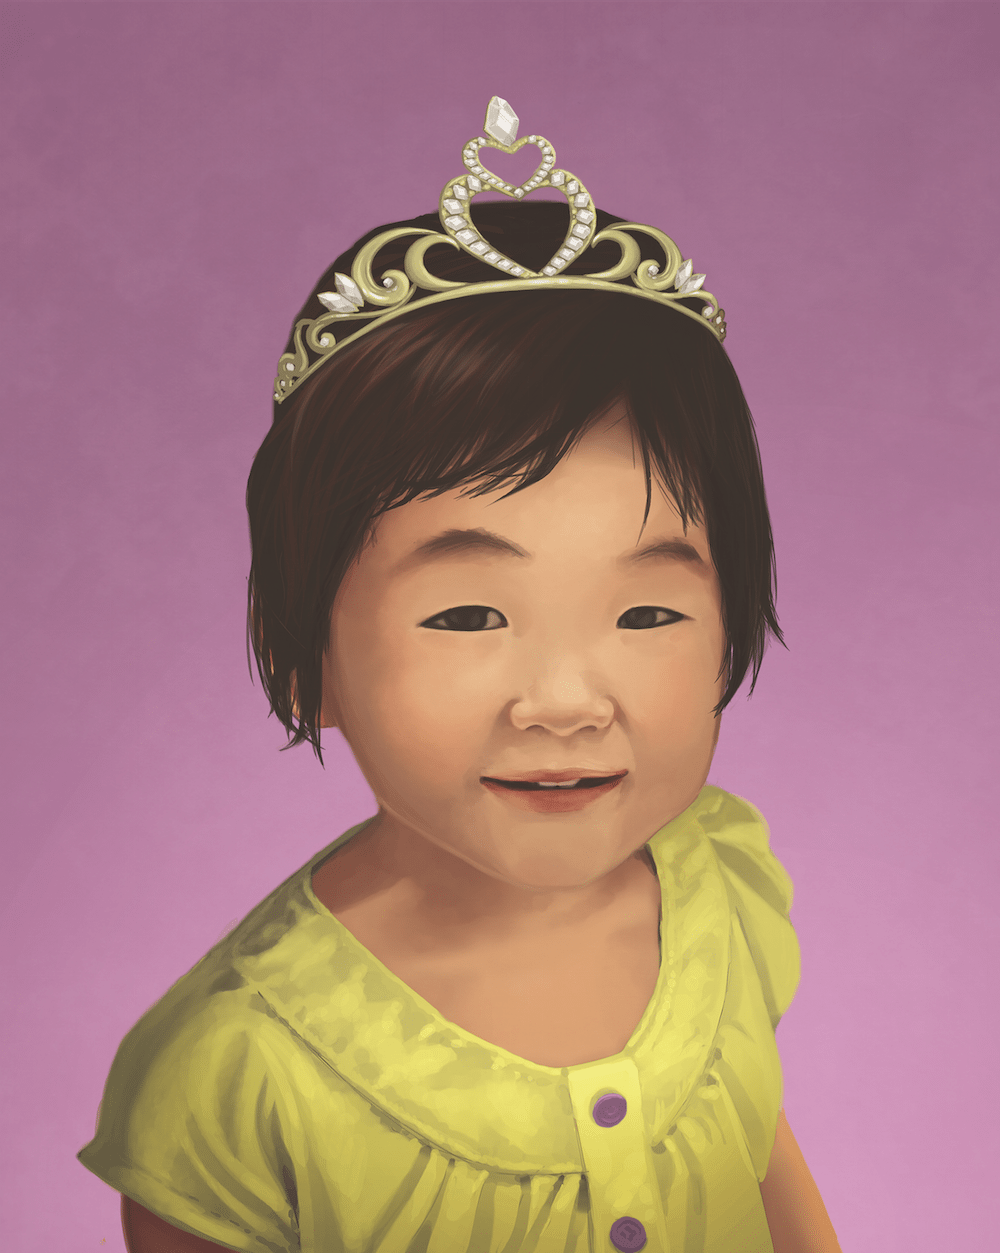 Princess Huong by Stephanie Campbell